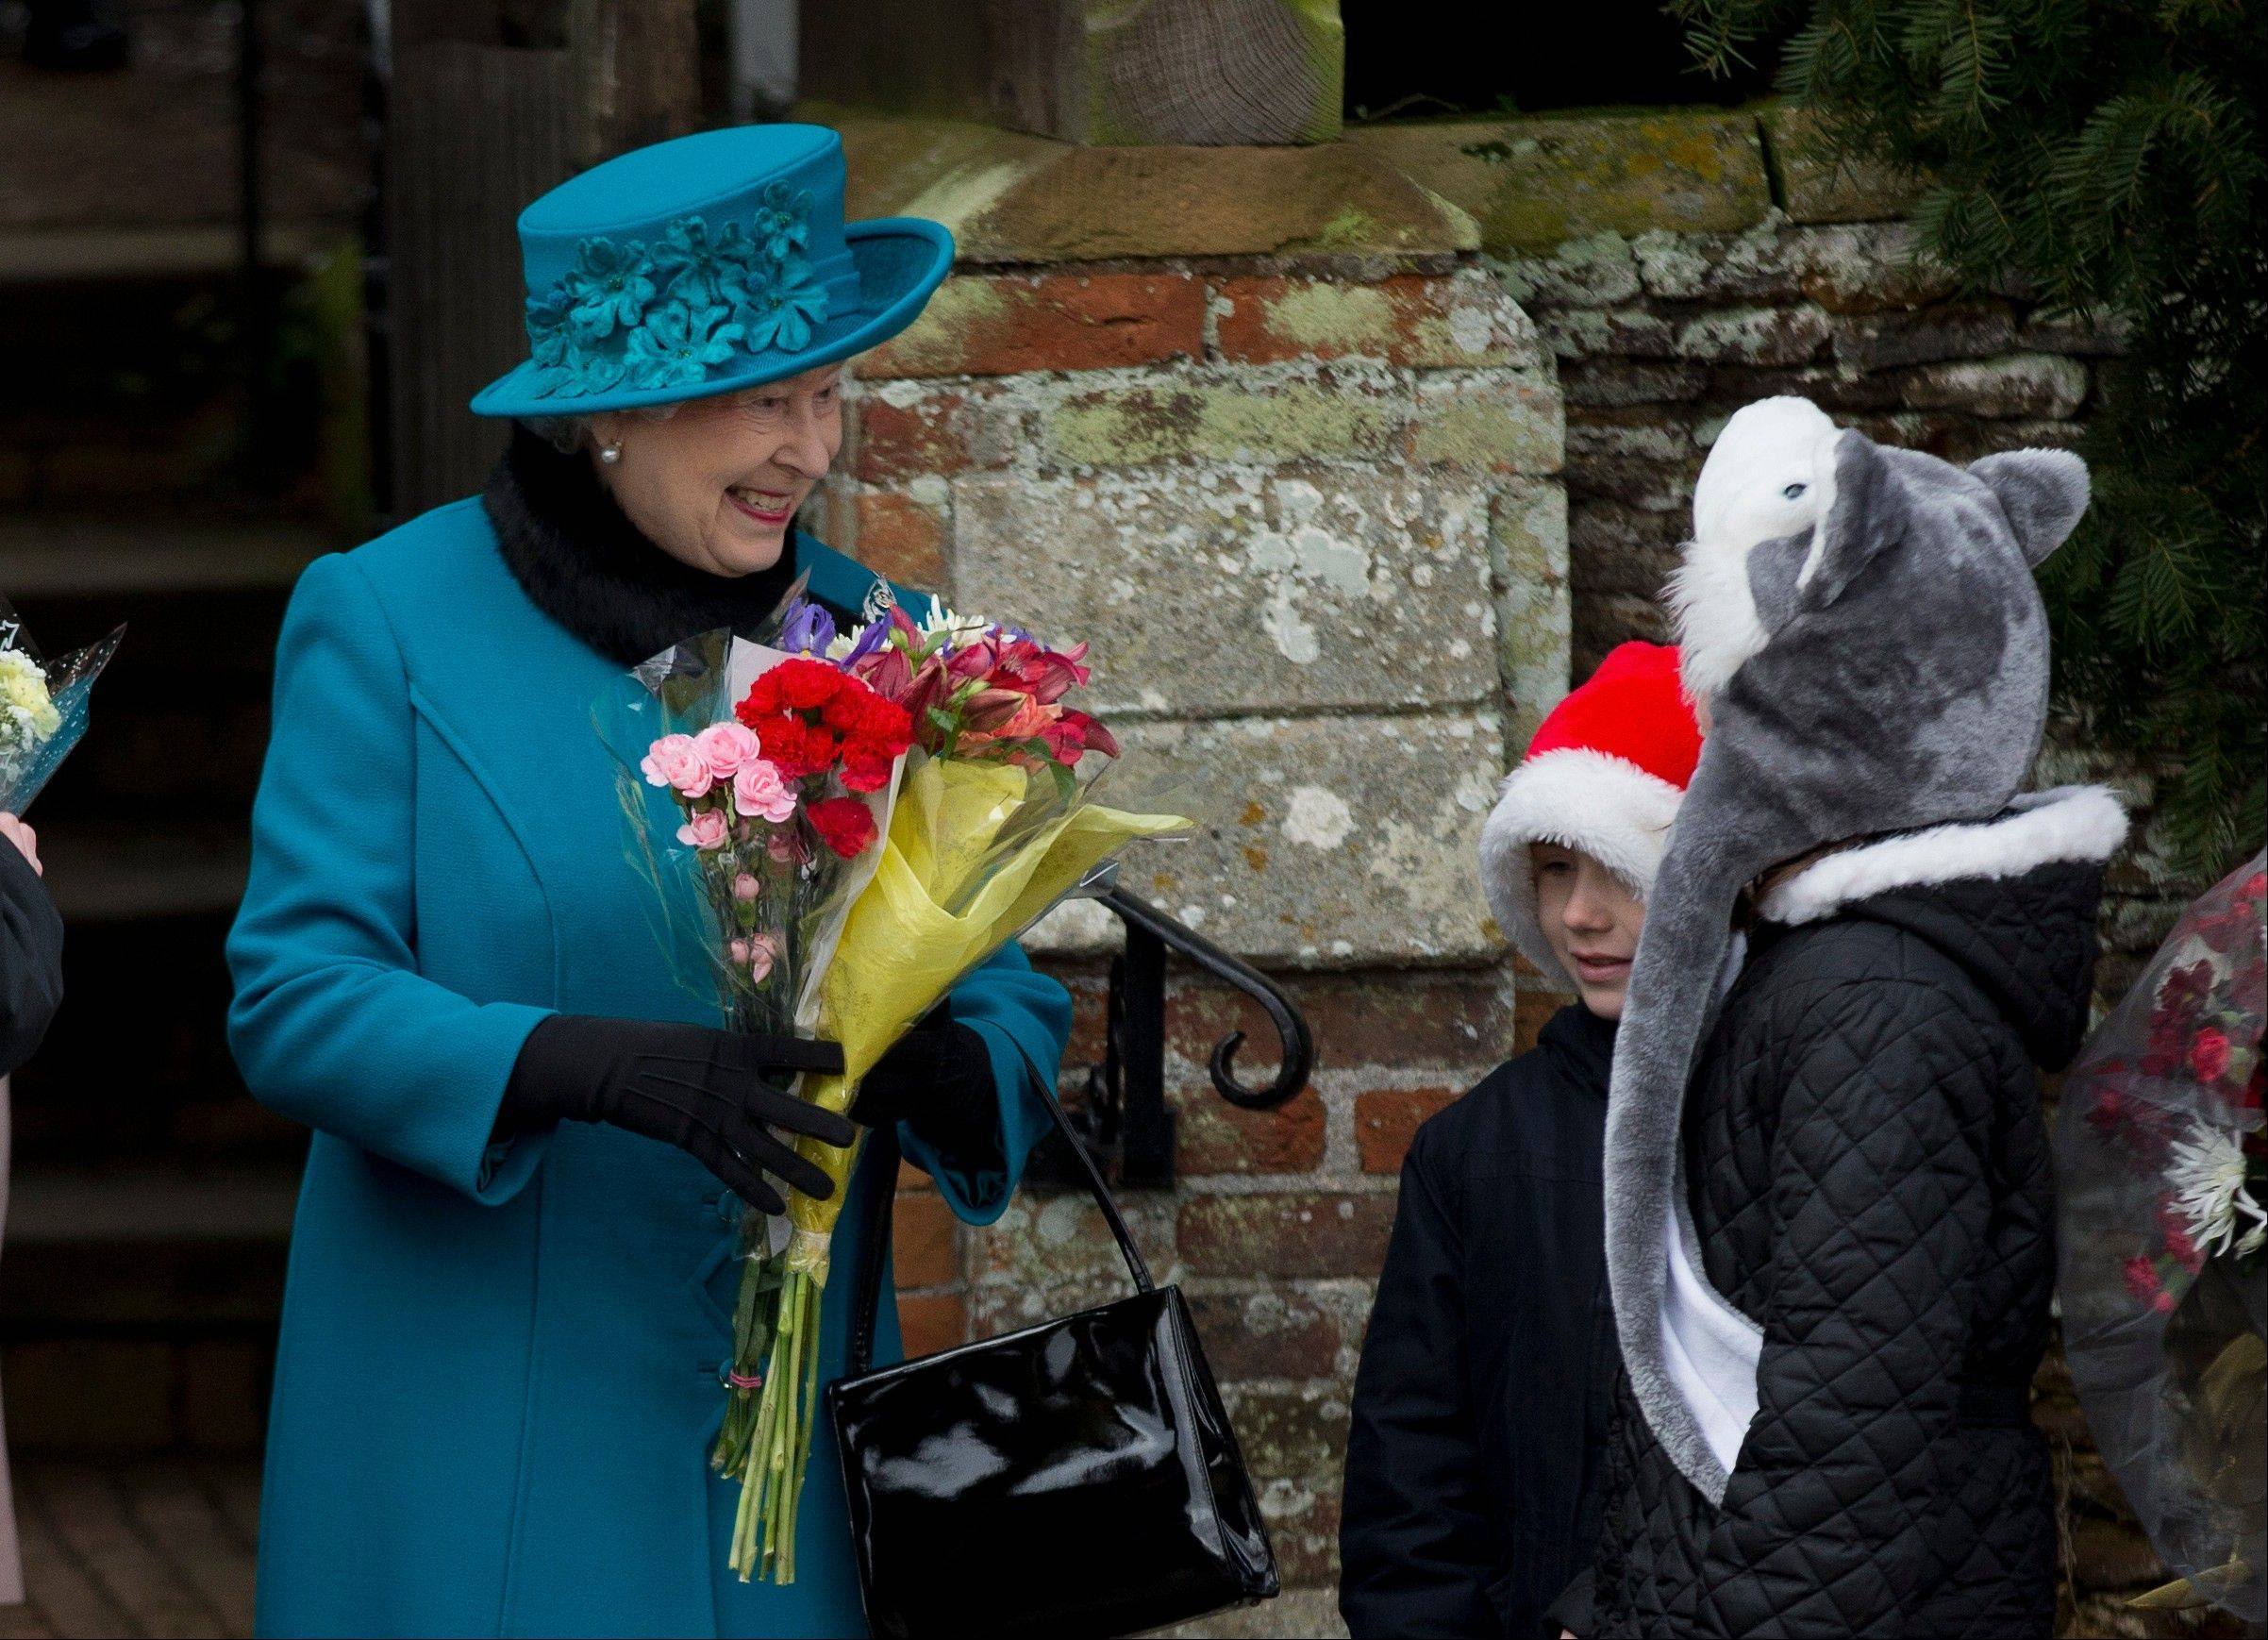 Britain's Queen Elizabeth II receives flowers from children after attending the British royal family's traditional Christmas Day church service in Sandringham, England, Tuesday, Dec. 25, 2012.